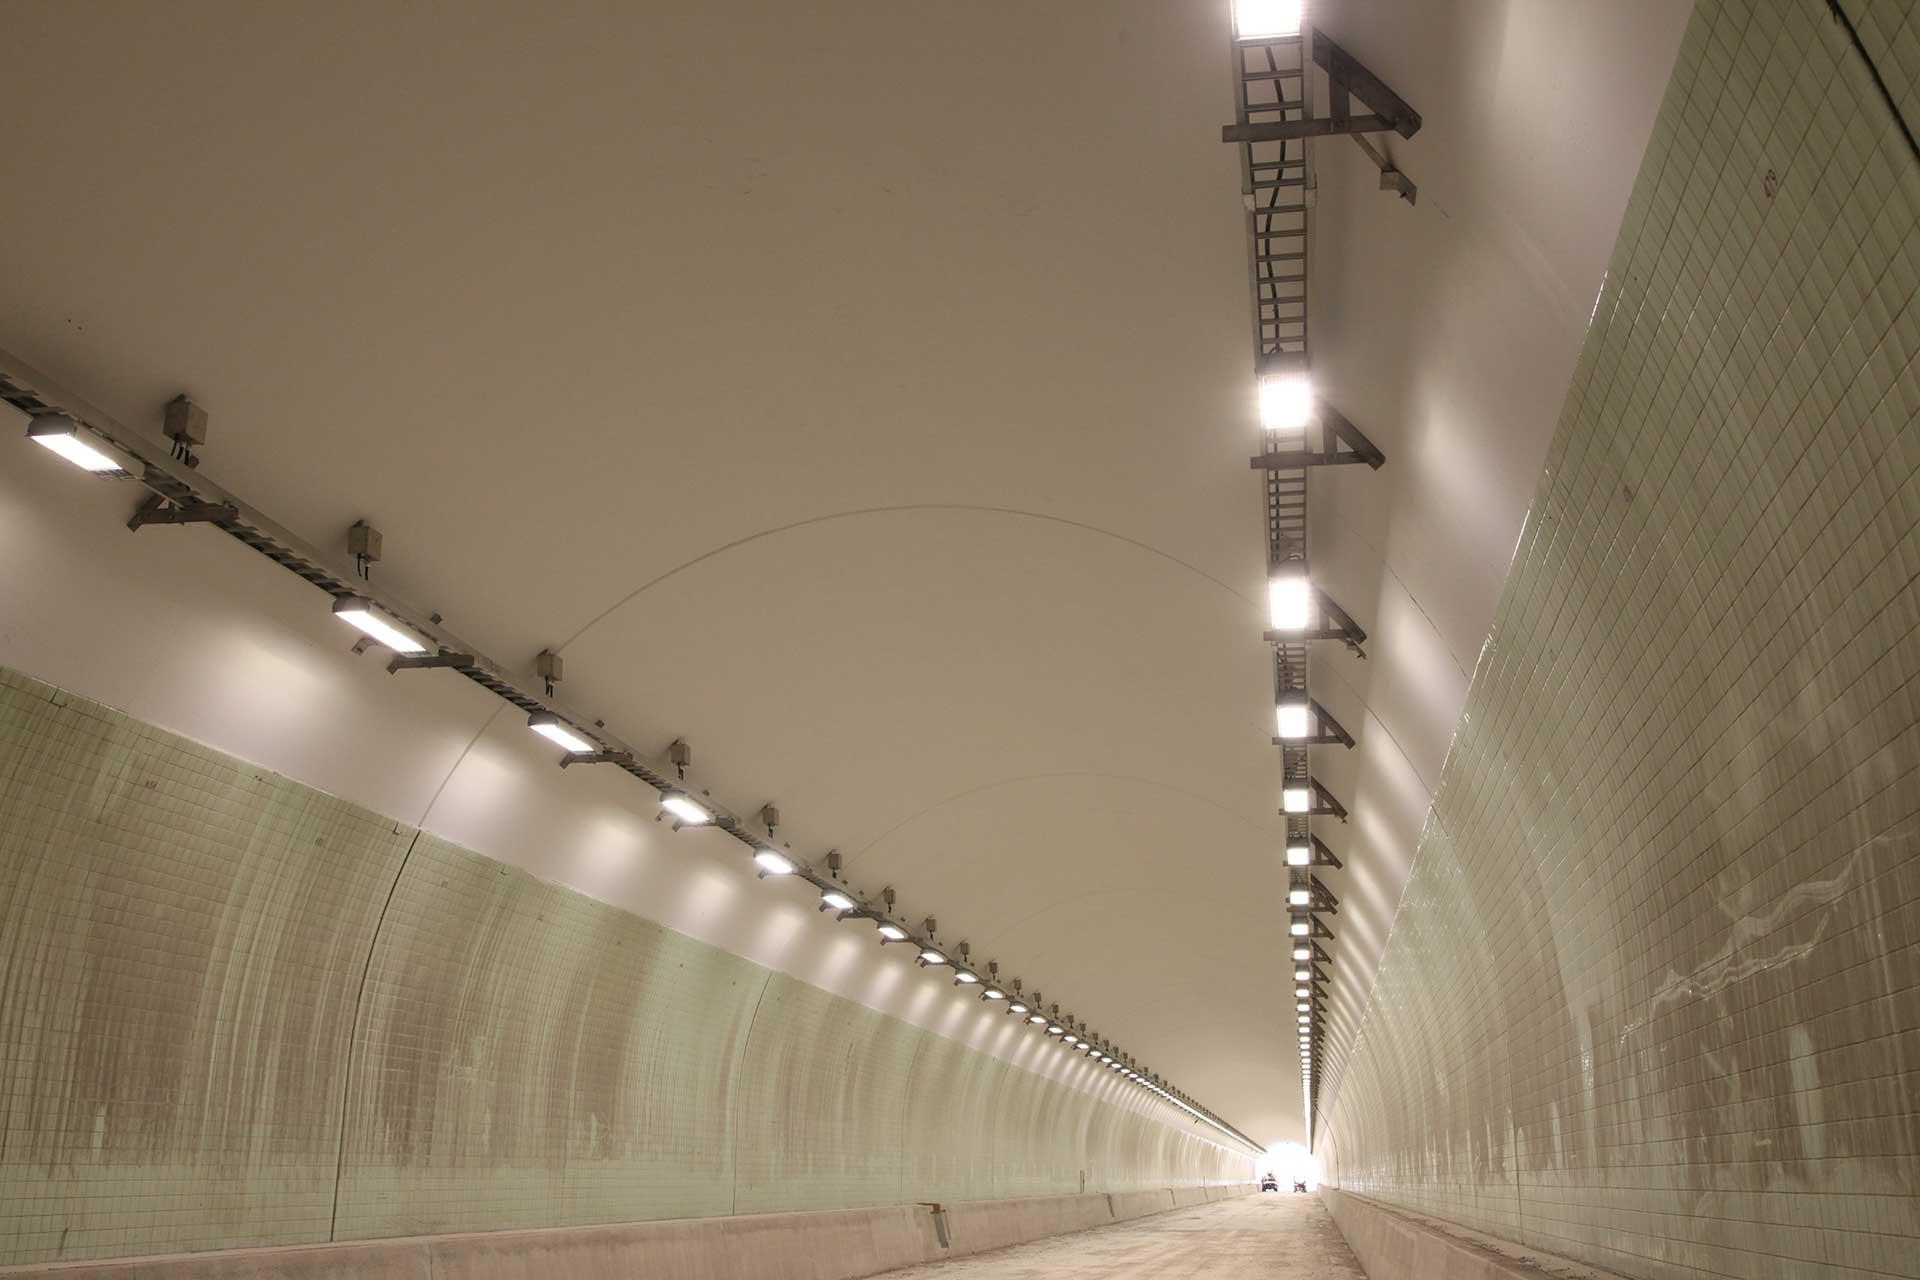 The FV32 was chosen to light Carlin Tunnel, the first highway tunnel in the US to switch to LED lighting, cutting costs and improving visual comfort